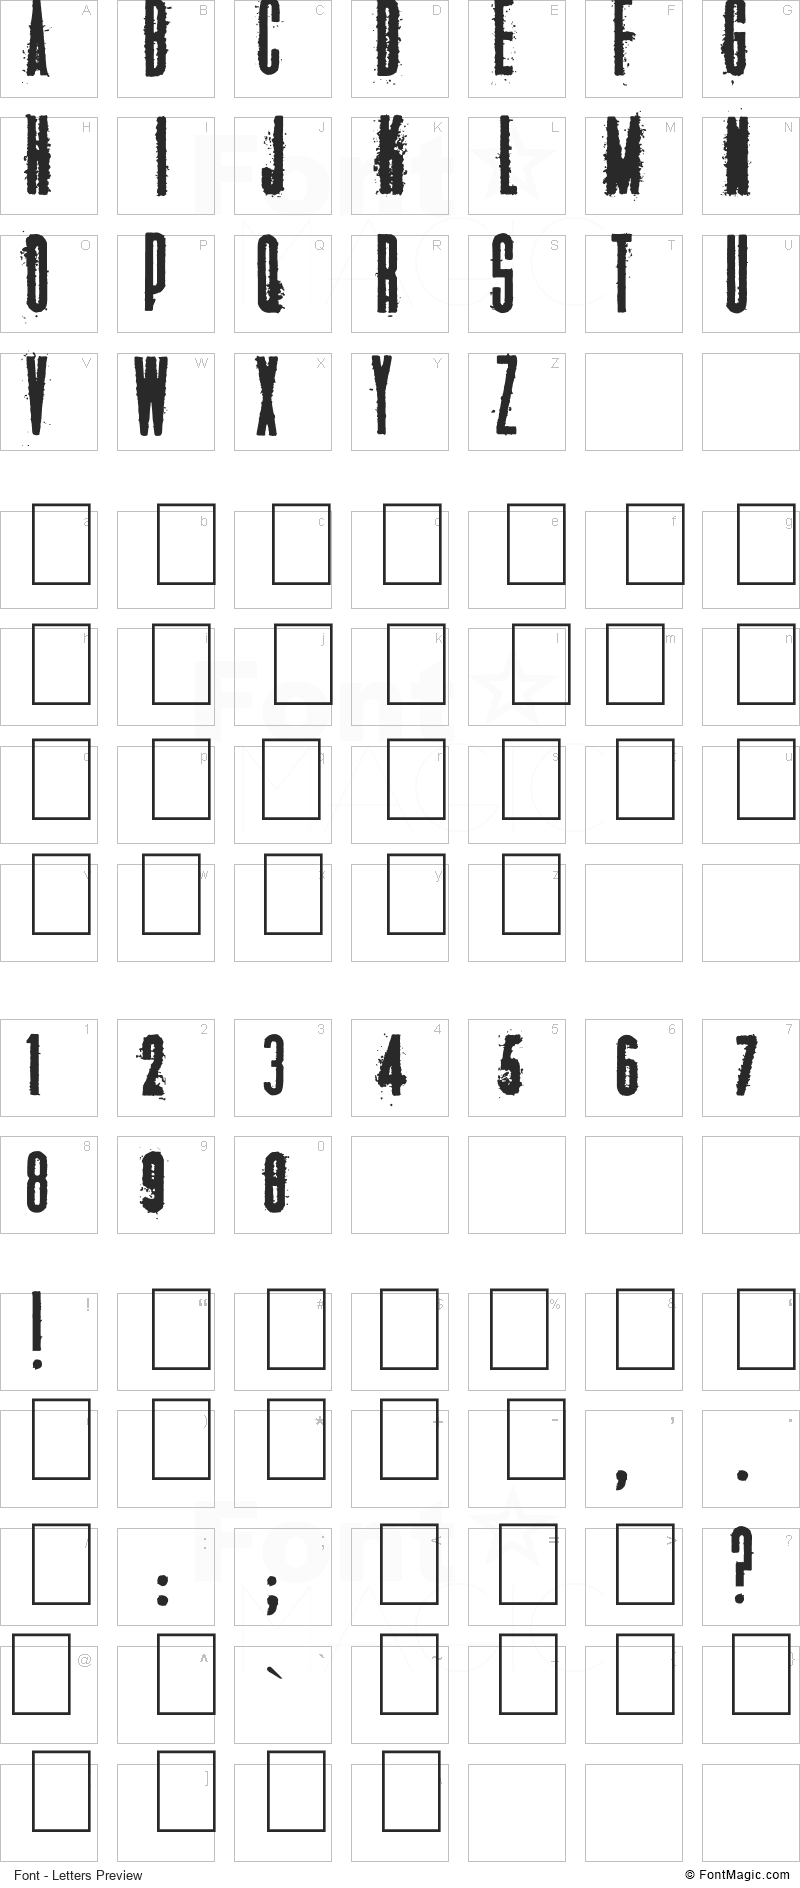 Manifesto Font - All Latters Preview Chart